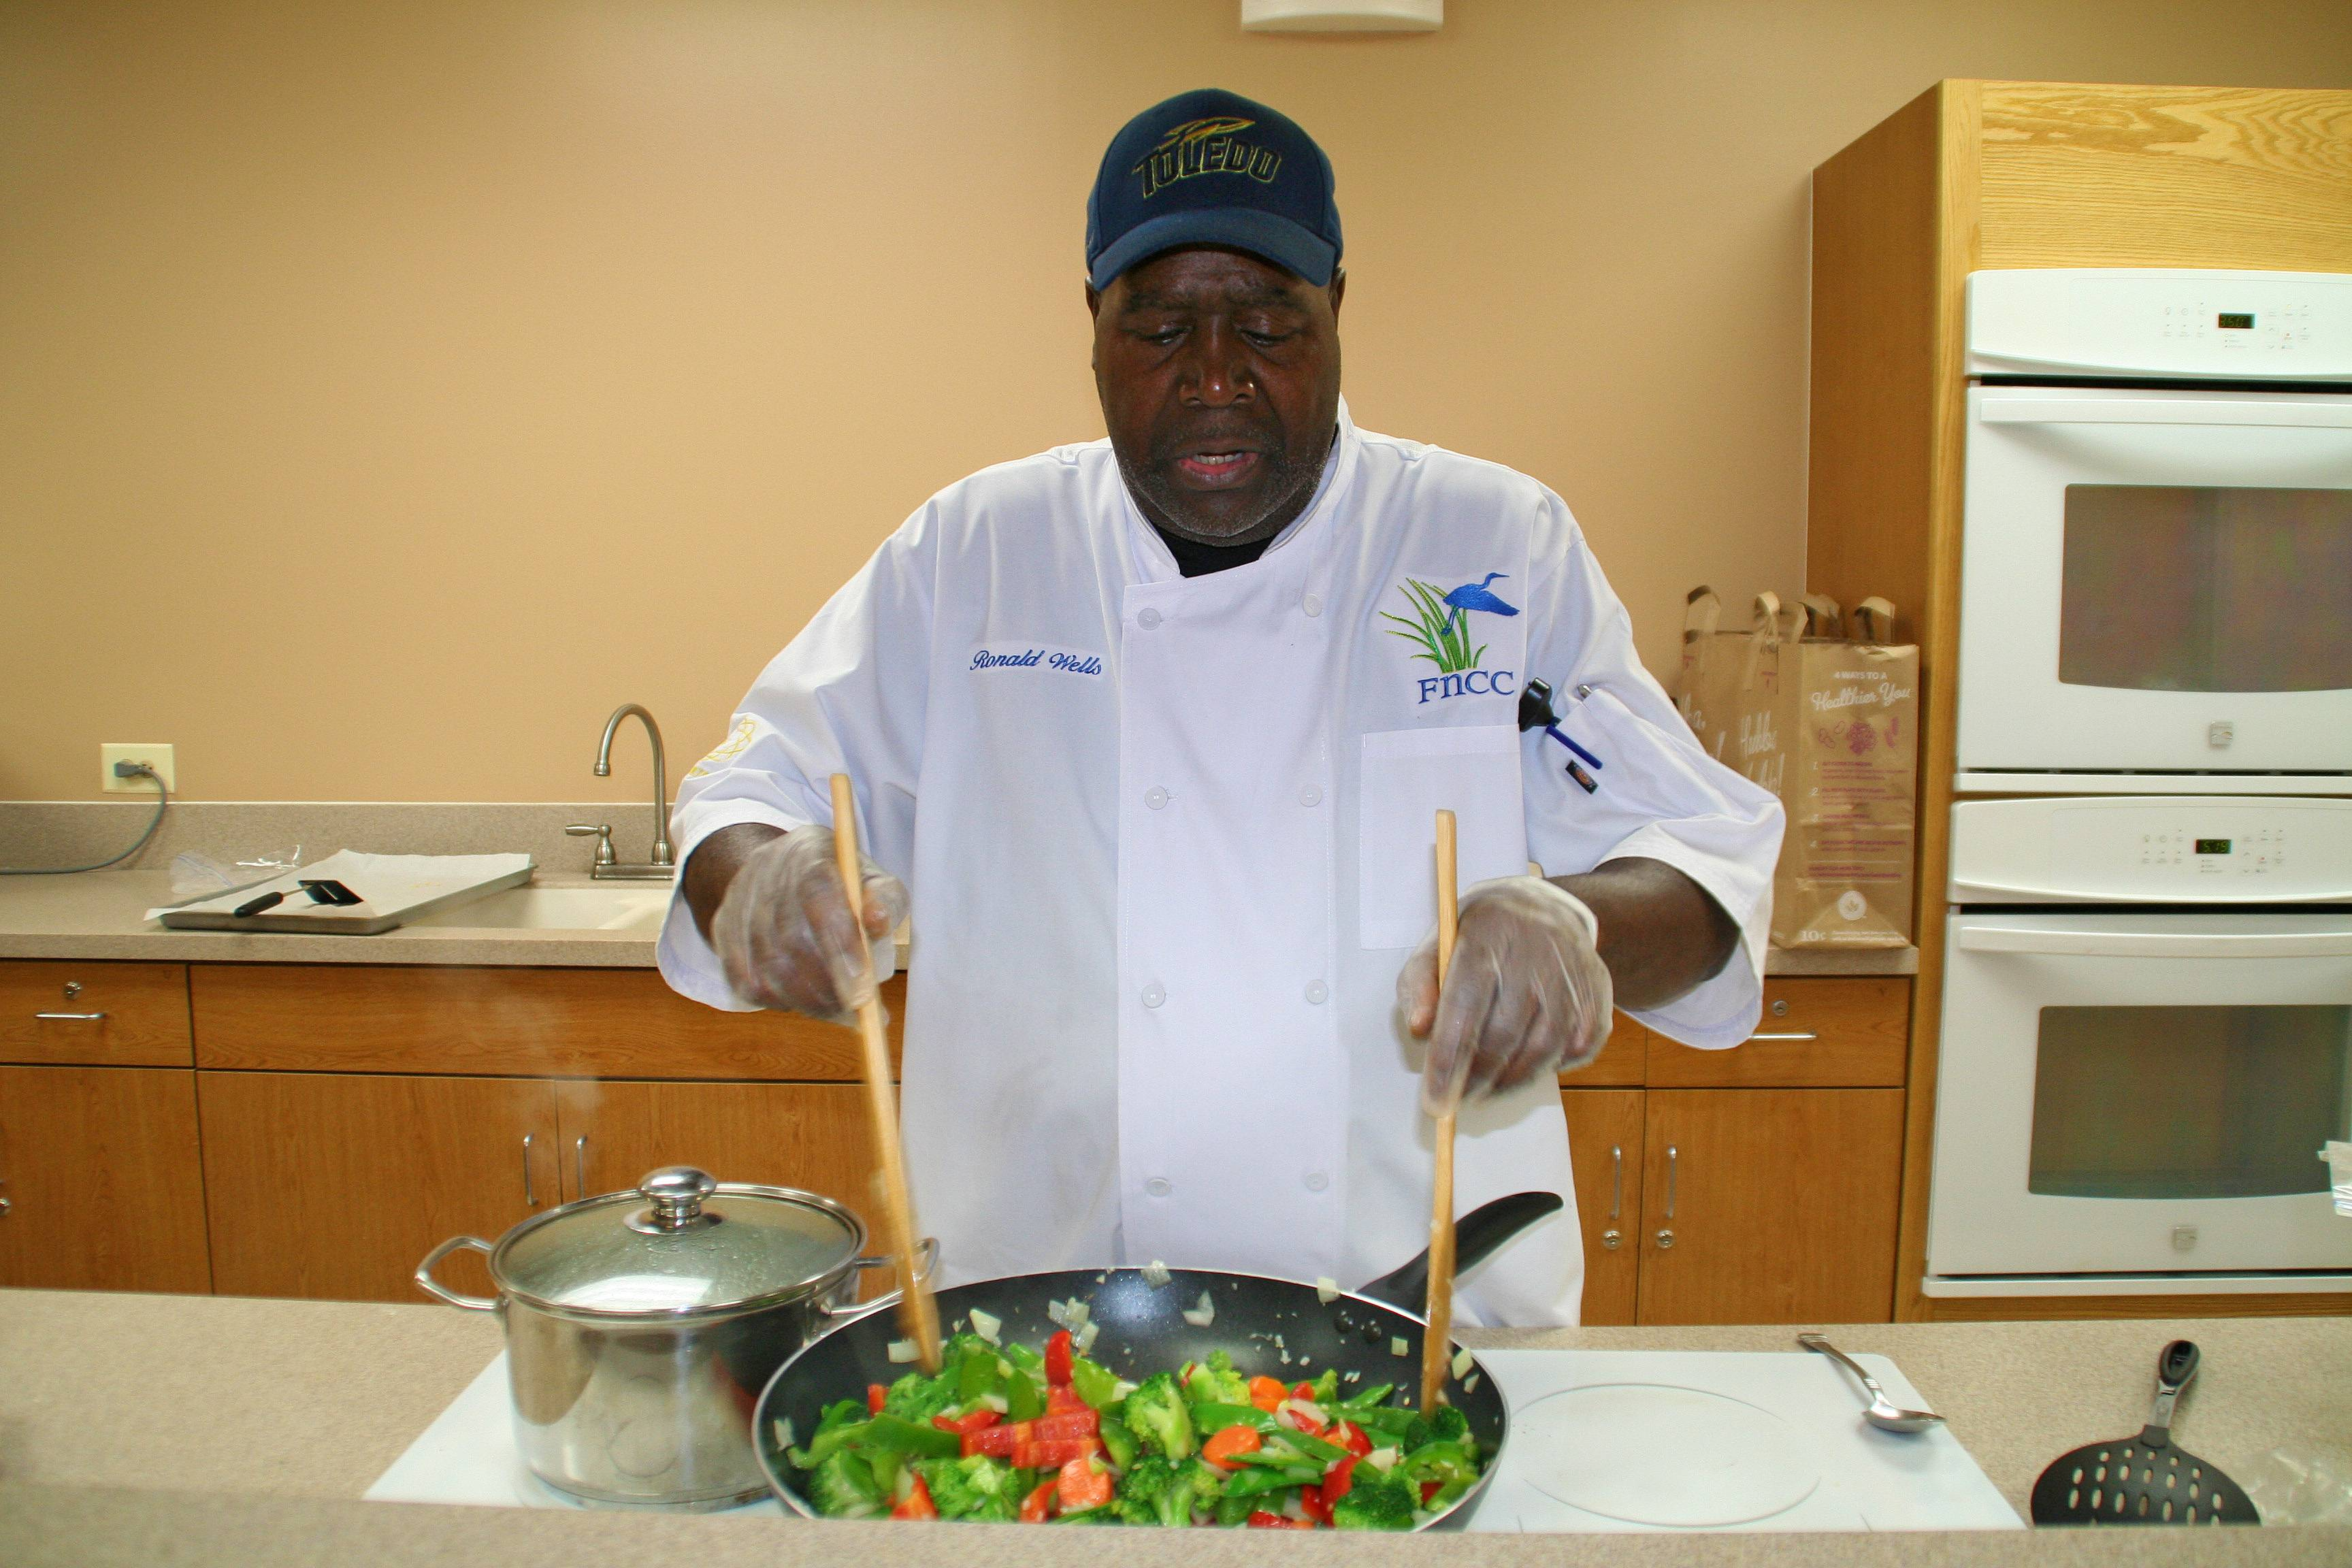 """The magic of a great stir-fry with crispy vegetables is the quick tumbling and tossing in a hot wok,"" Wells said at the Feb. 20, Joyful Chinese cooking class at Prairie Lakes Community Center."